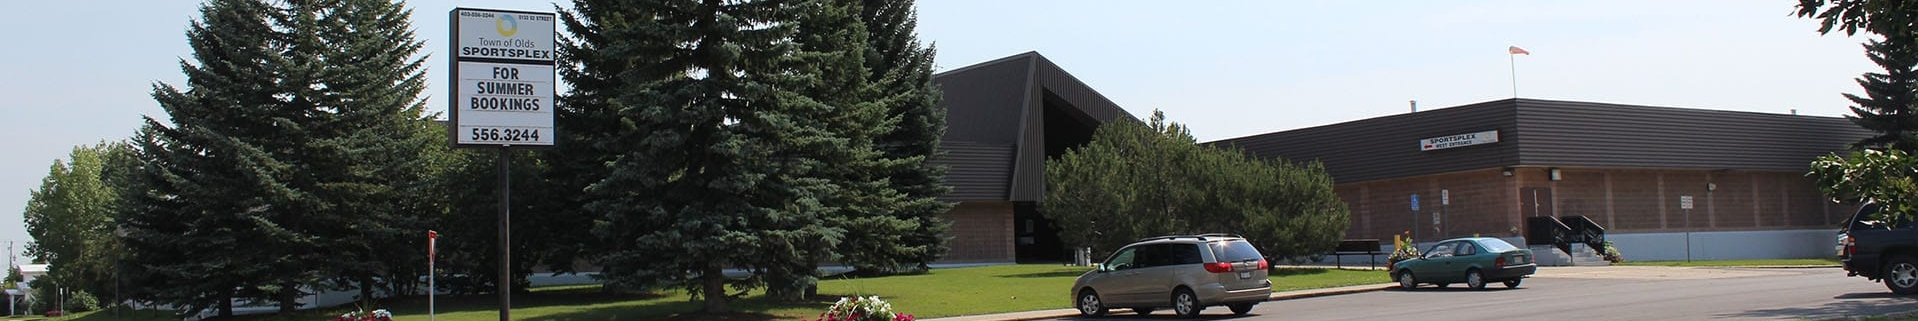 Outside view of the Olds Sportsplex building in the summer